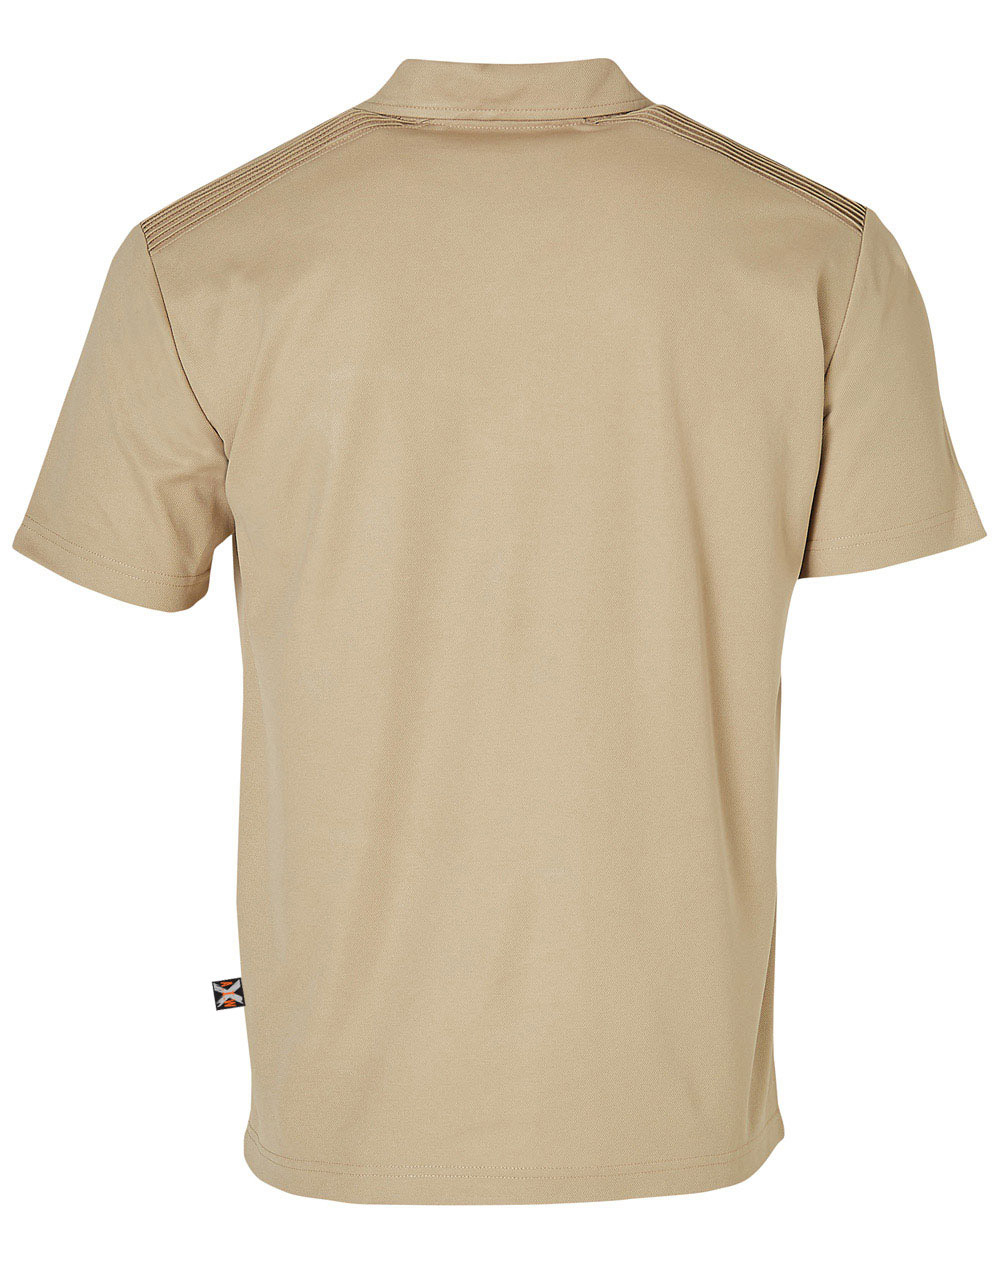 https://s3-ap-southeast-1.amazonaws.com/ws-imgs/WORKWEAR/PS209_Beige_Back.jpg